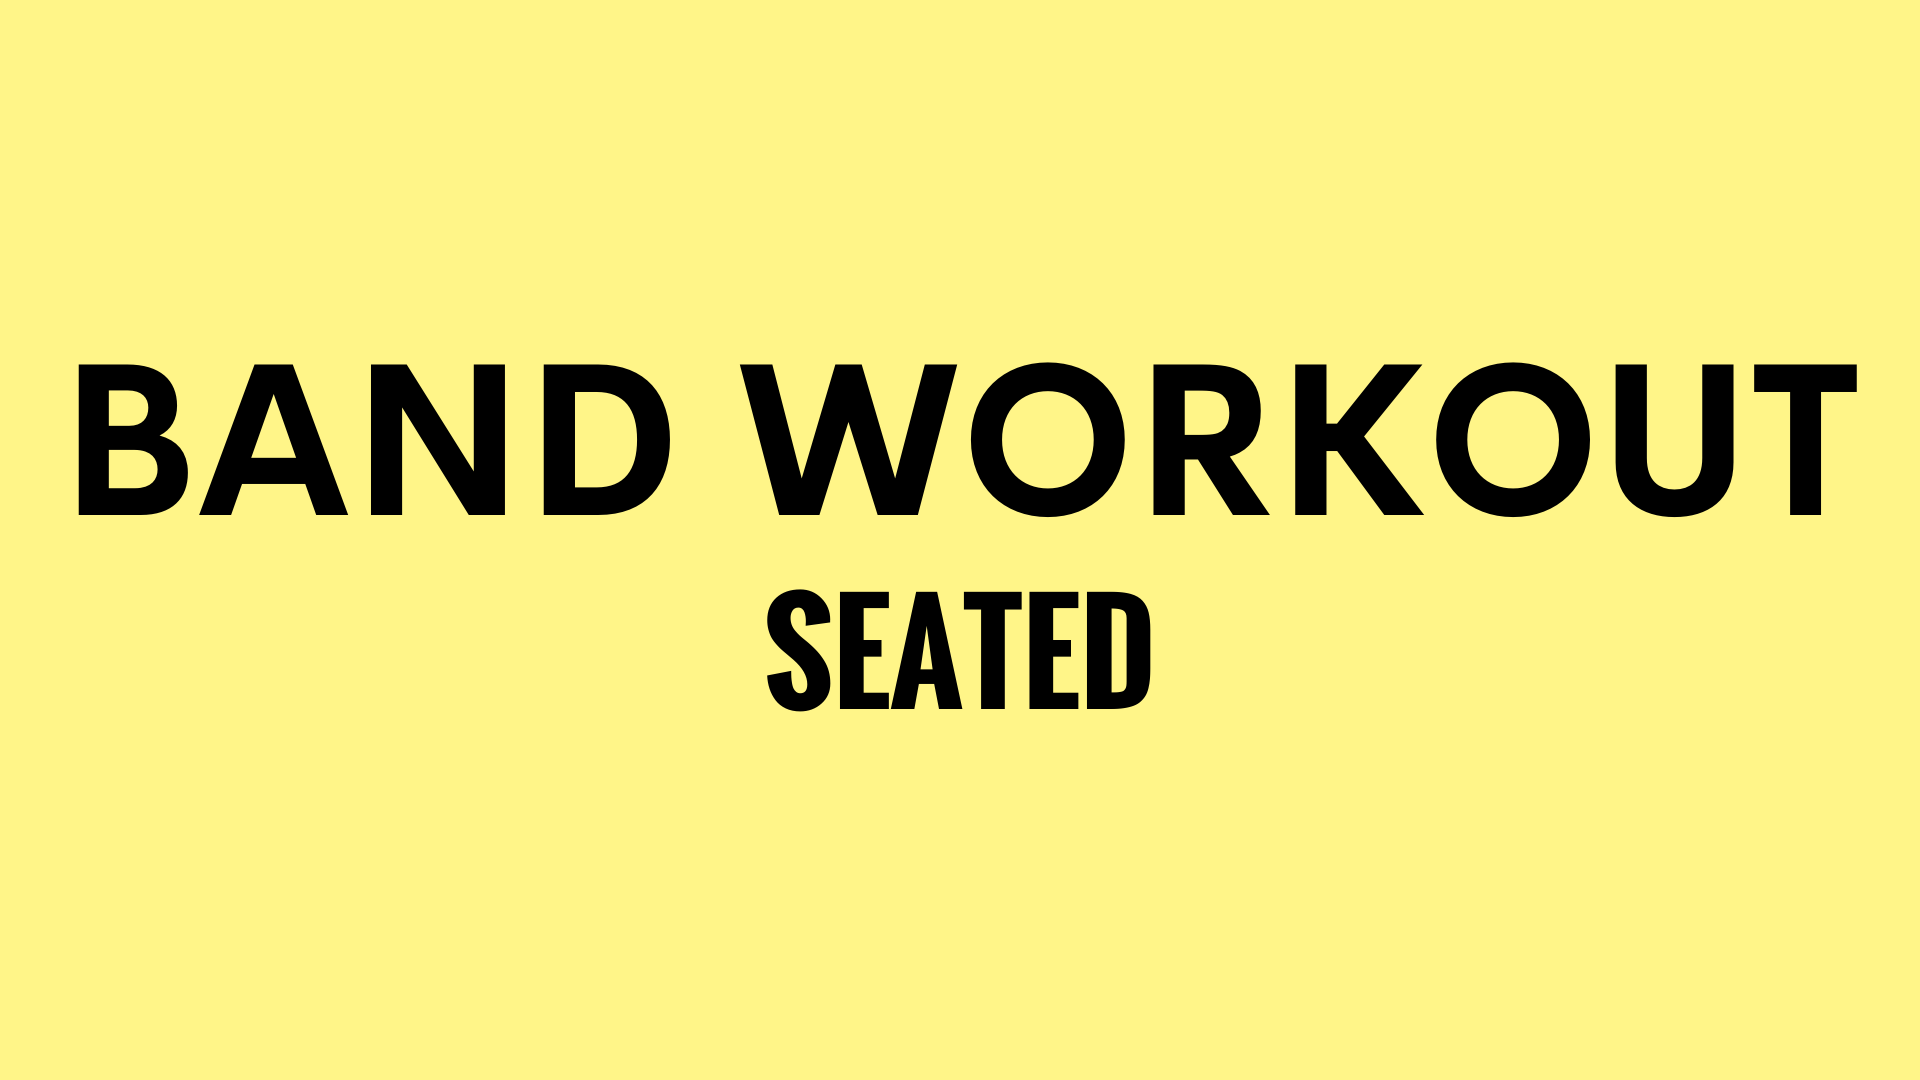 seated band workout